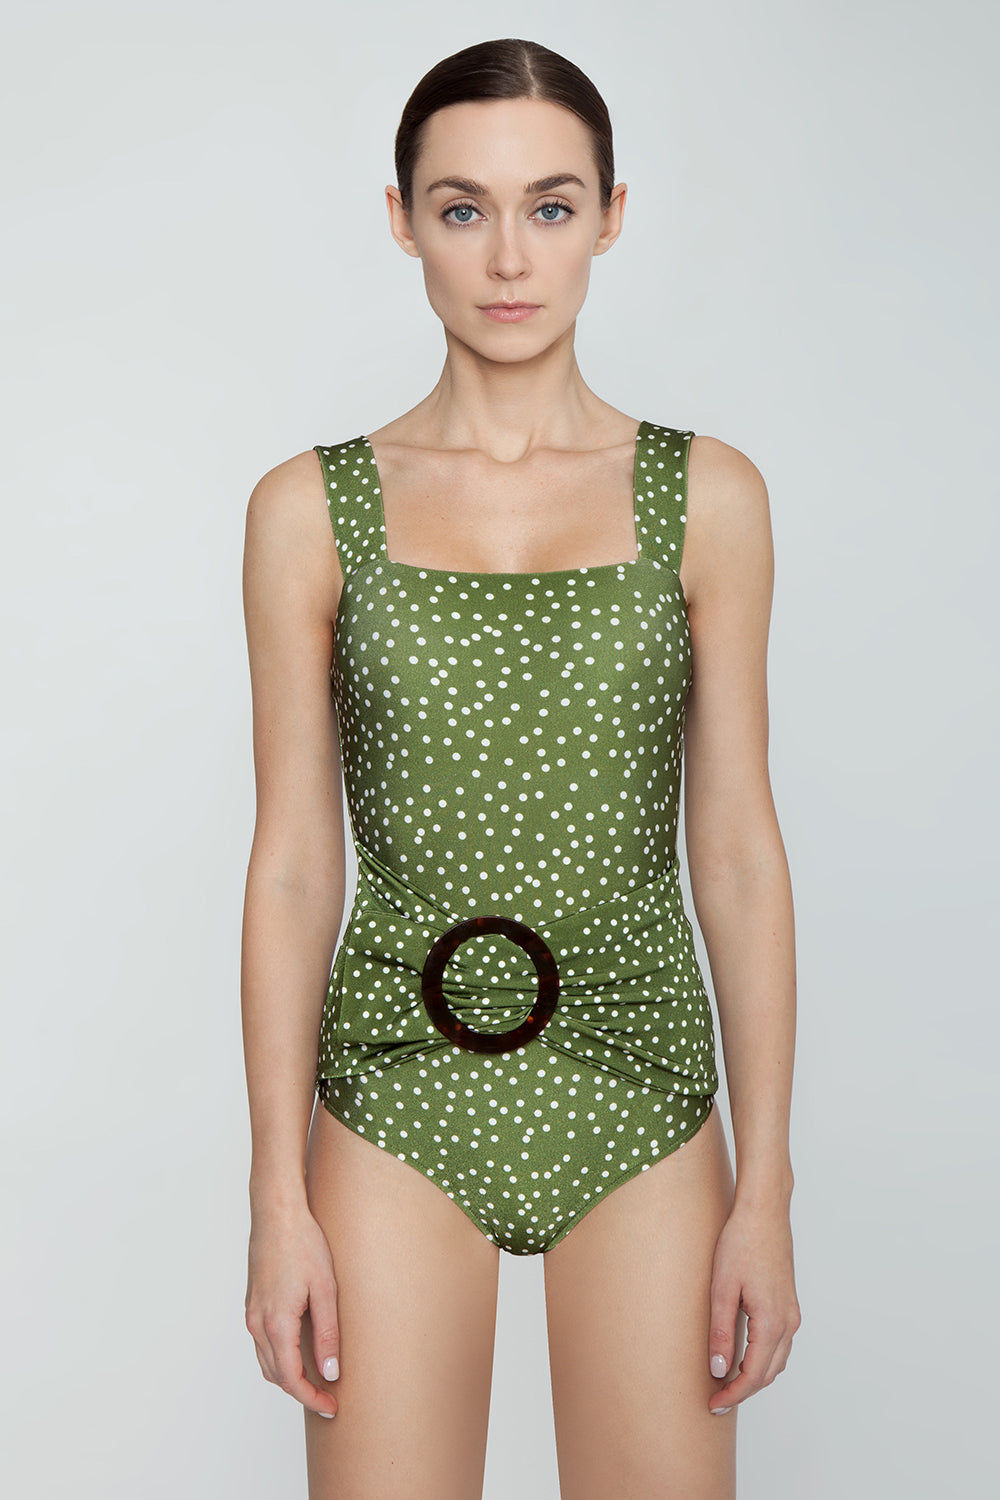 ADRIANA DEGREAS Square Neck Hoop Buckle One Piece Swimsuit - Mille Punti Army Green Polka Dot Print One Piece | Mille Punti Army Green Polka Dot Print| Adriana Degreas Hoop One Piece Swimsuit - Mille Punti Green Dot Print Square neckline Thick shoulder straps  Twisted bodice  Tortoise hoop detail  Moderate-full coverage  Front View